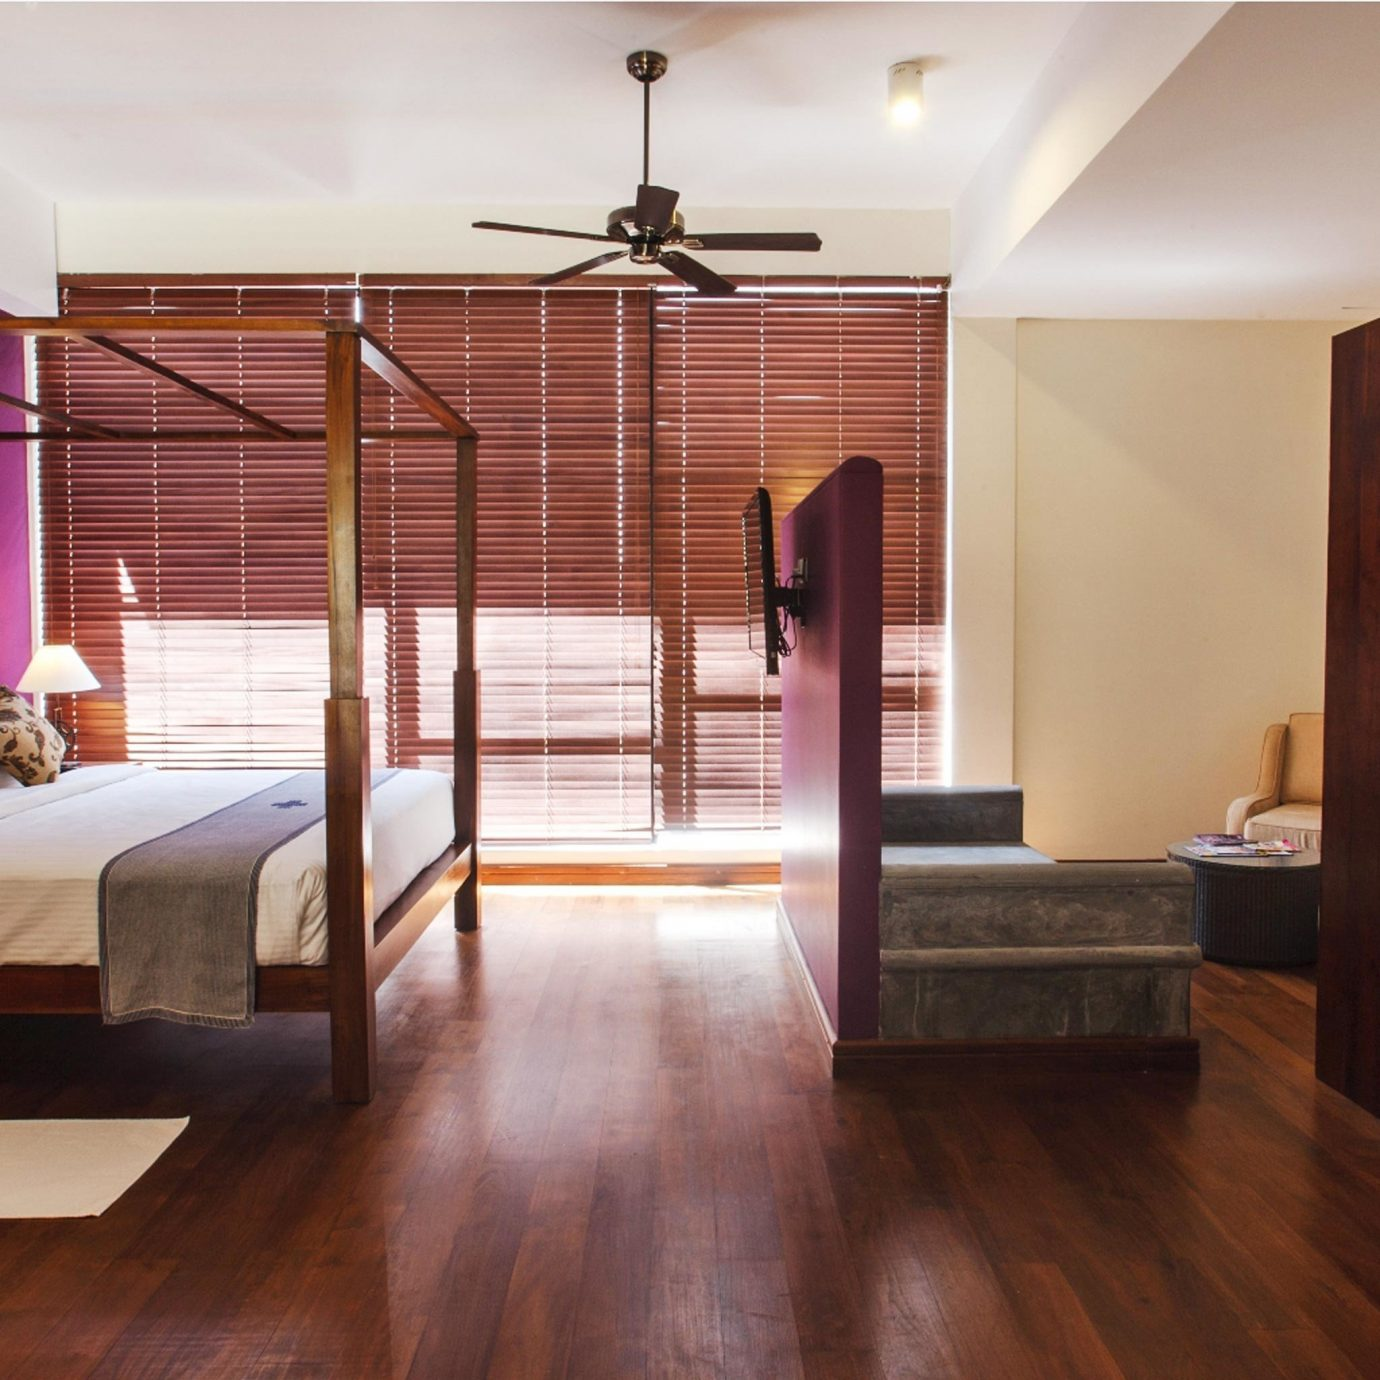 Bedroom Classic Suite property living room hardwood wood flooring home flooring laminate flooring loft